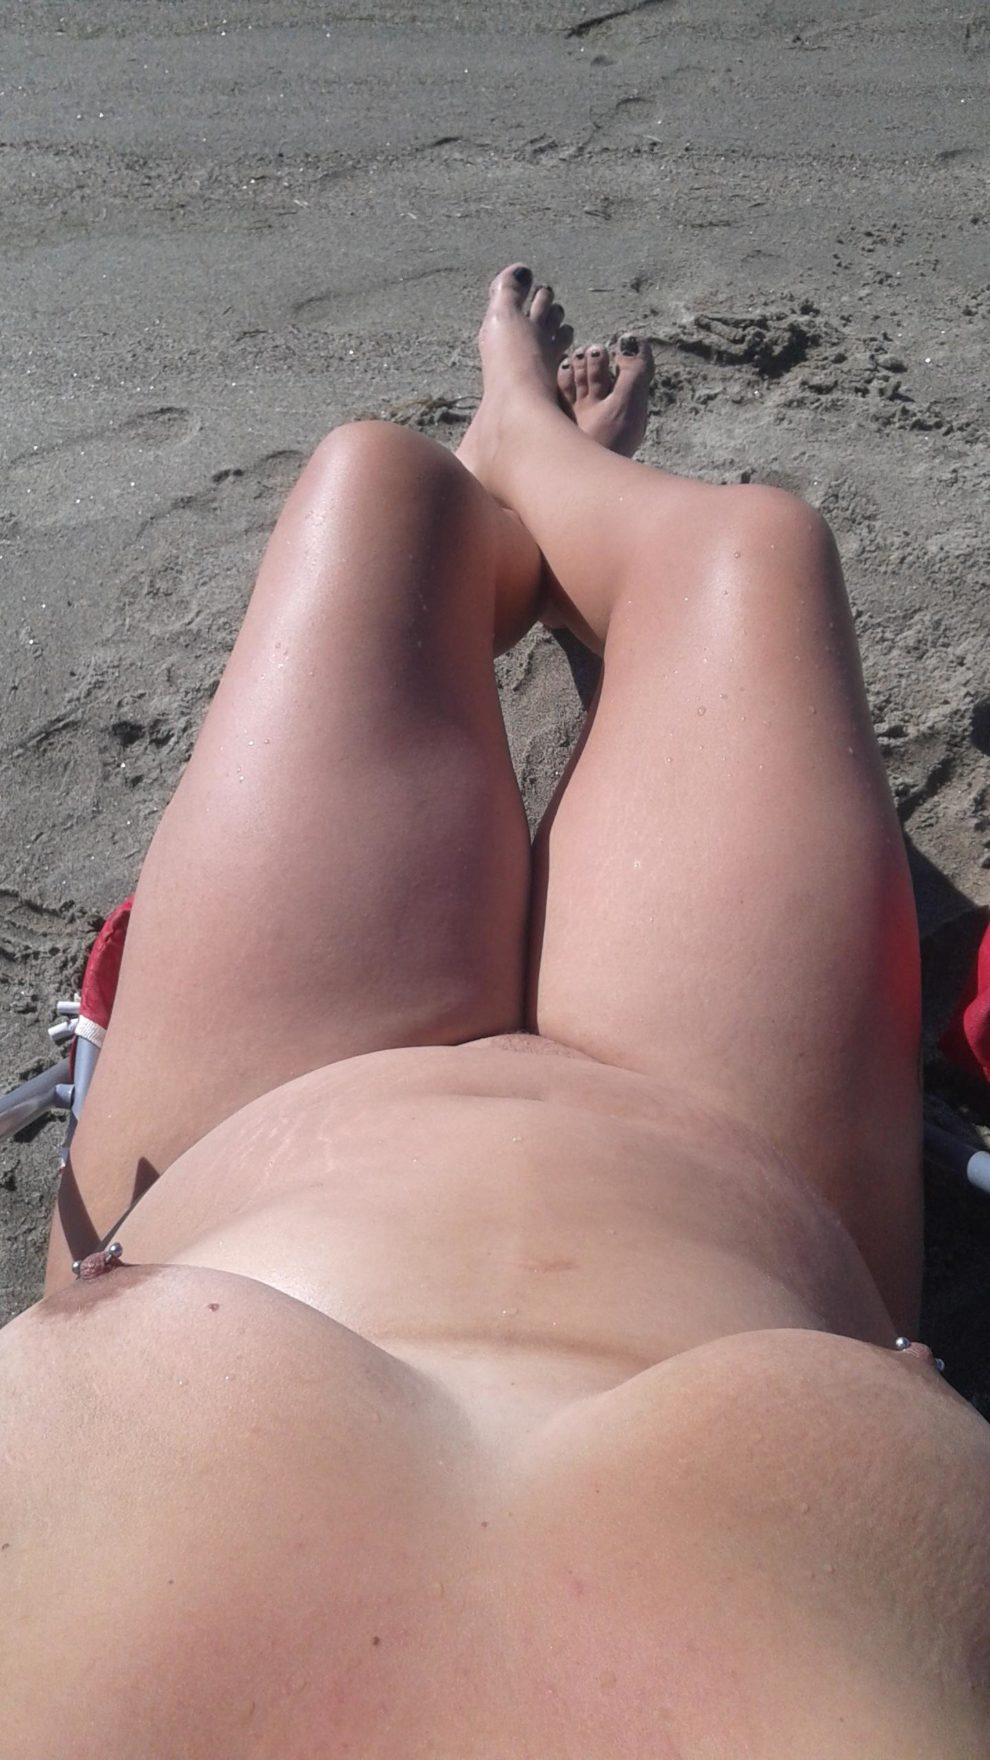 Soaking up the sun...(xpost gwcurvy)